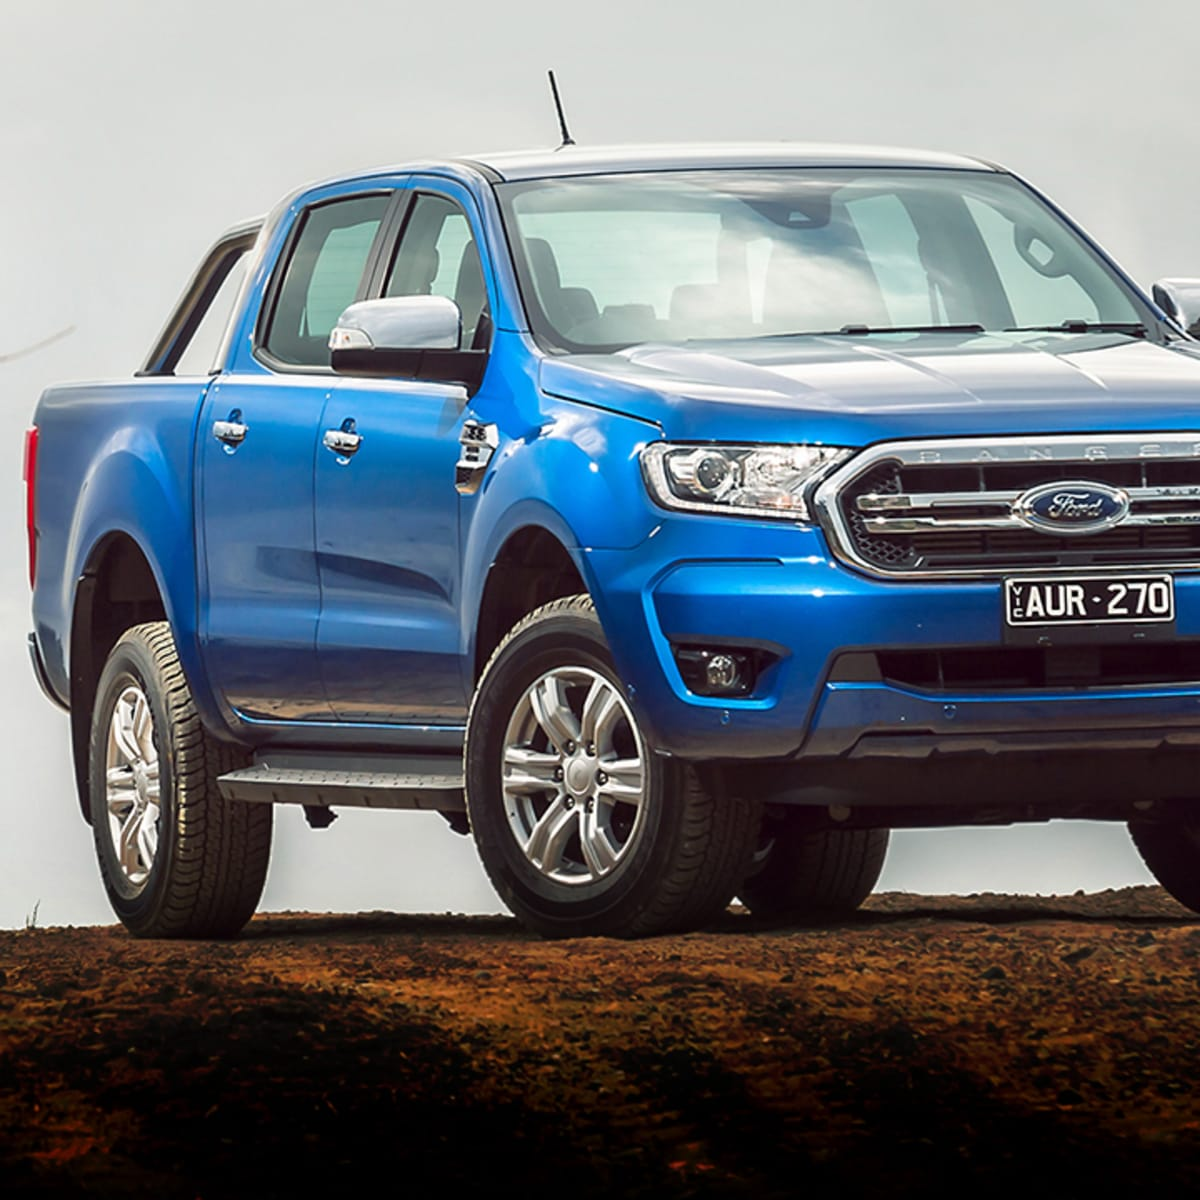 2019 Ford Ranger Xlt Review 2 0 Bi Turbo Caradvice